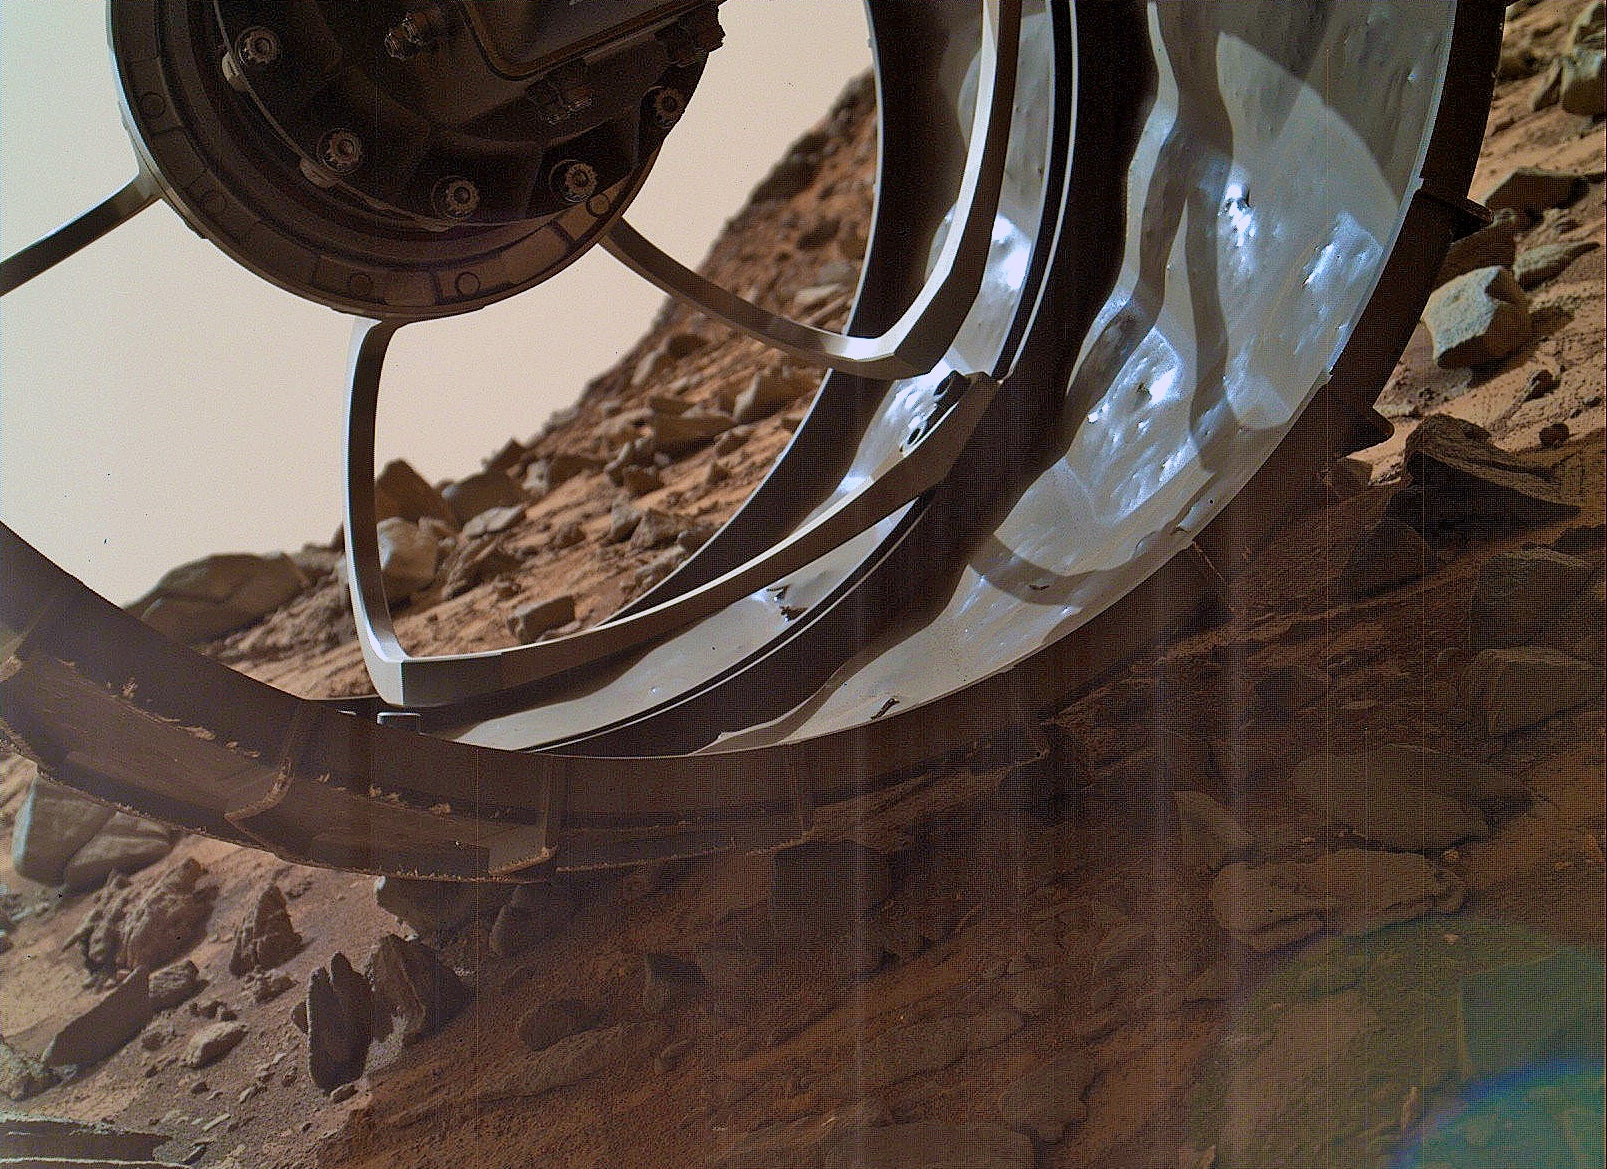 Curiosity snaps cool closeup photo of its damaged tire